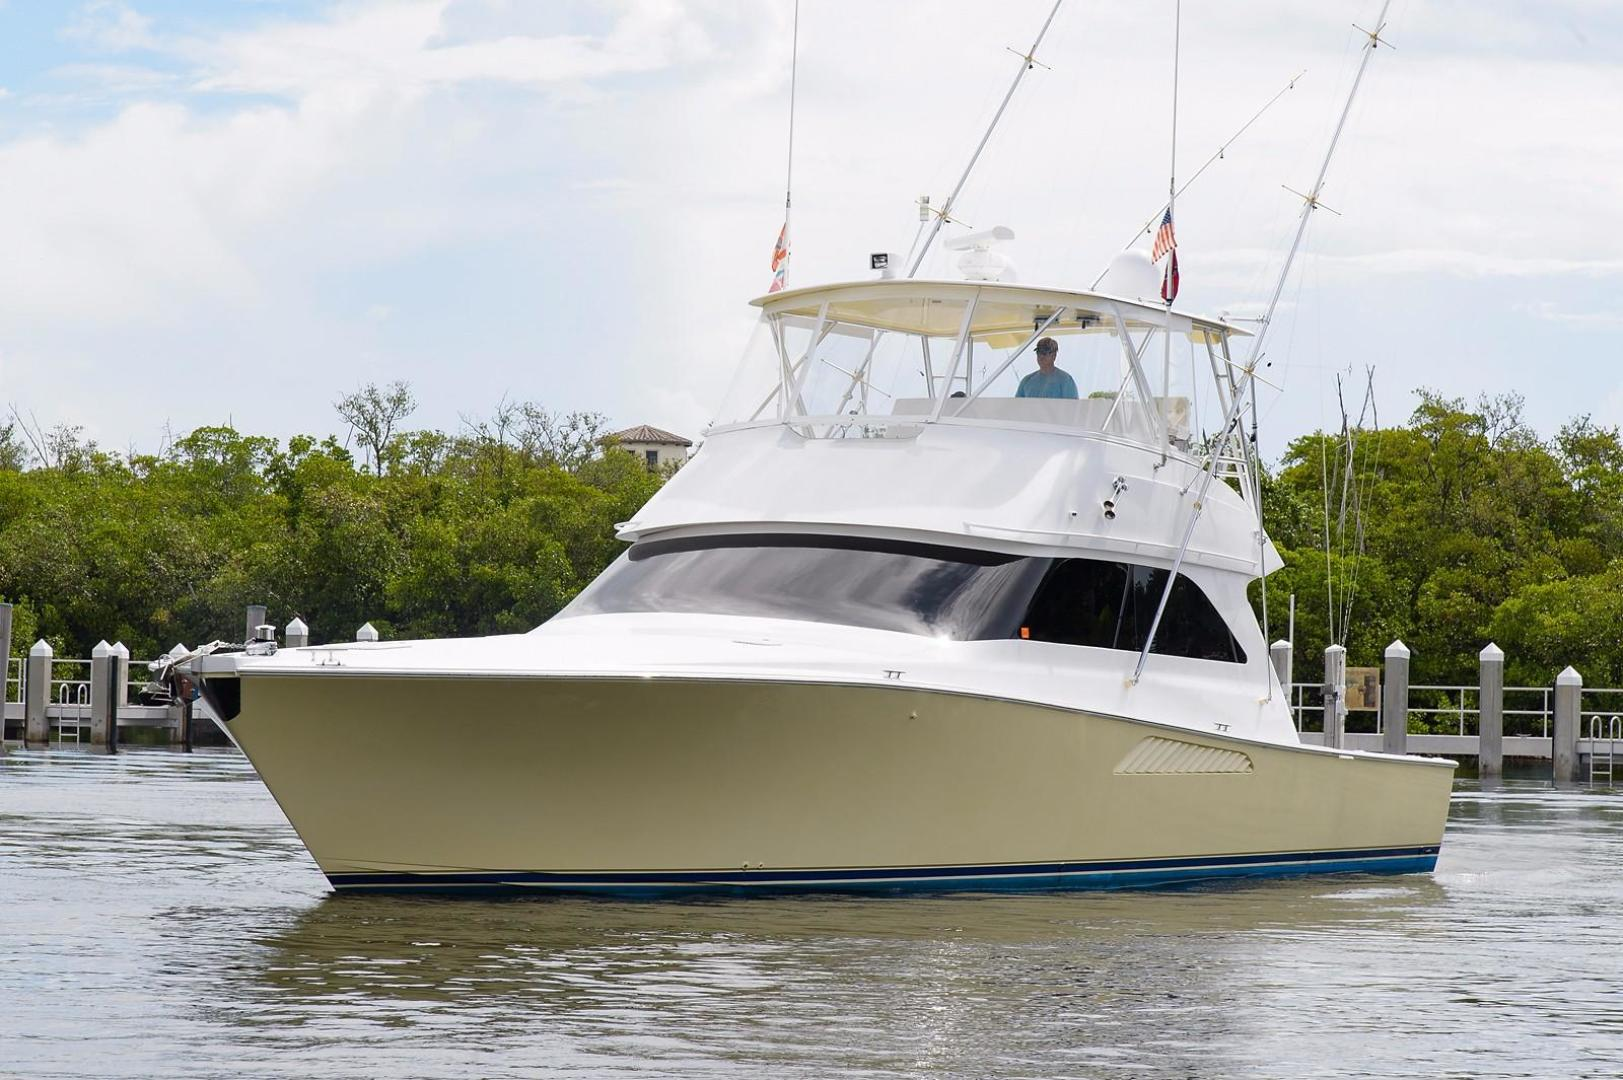 Viking-52 Convertible 2002-Double Eagle Boca Raton-Florida-United States-458707 | Thumbnail